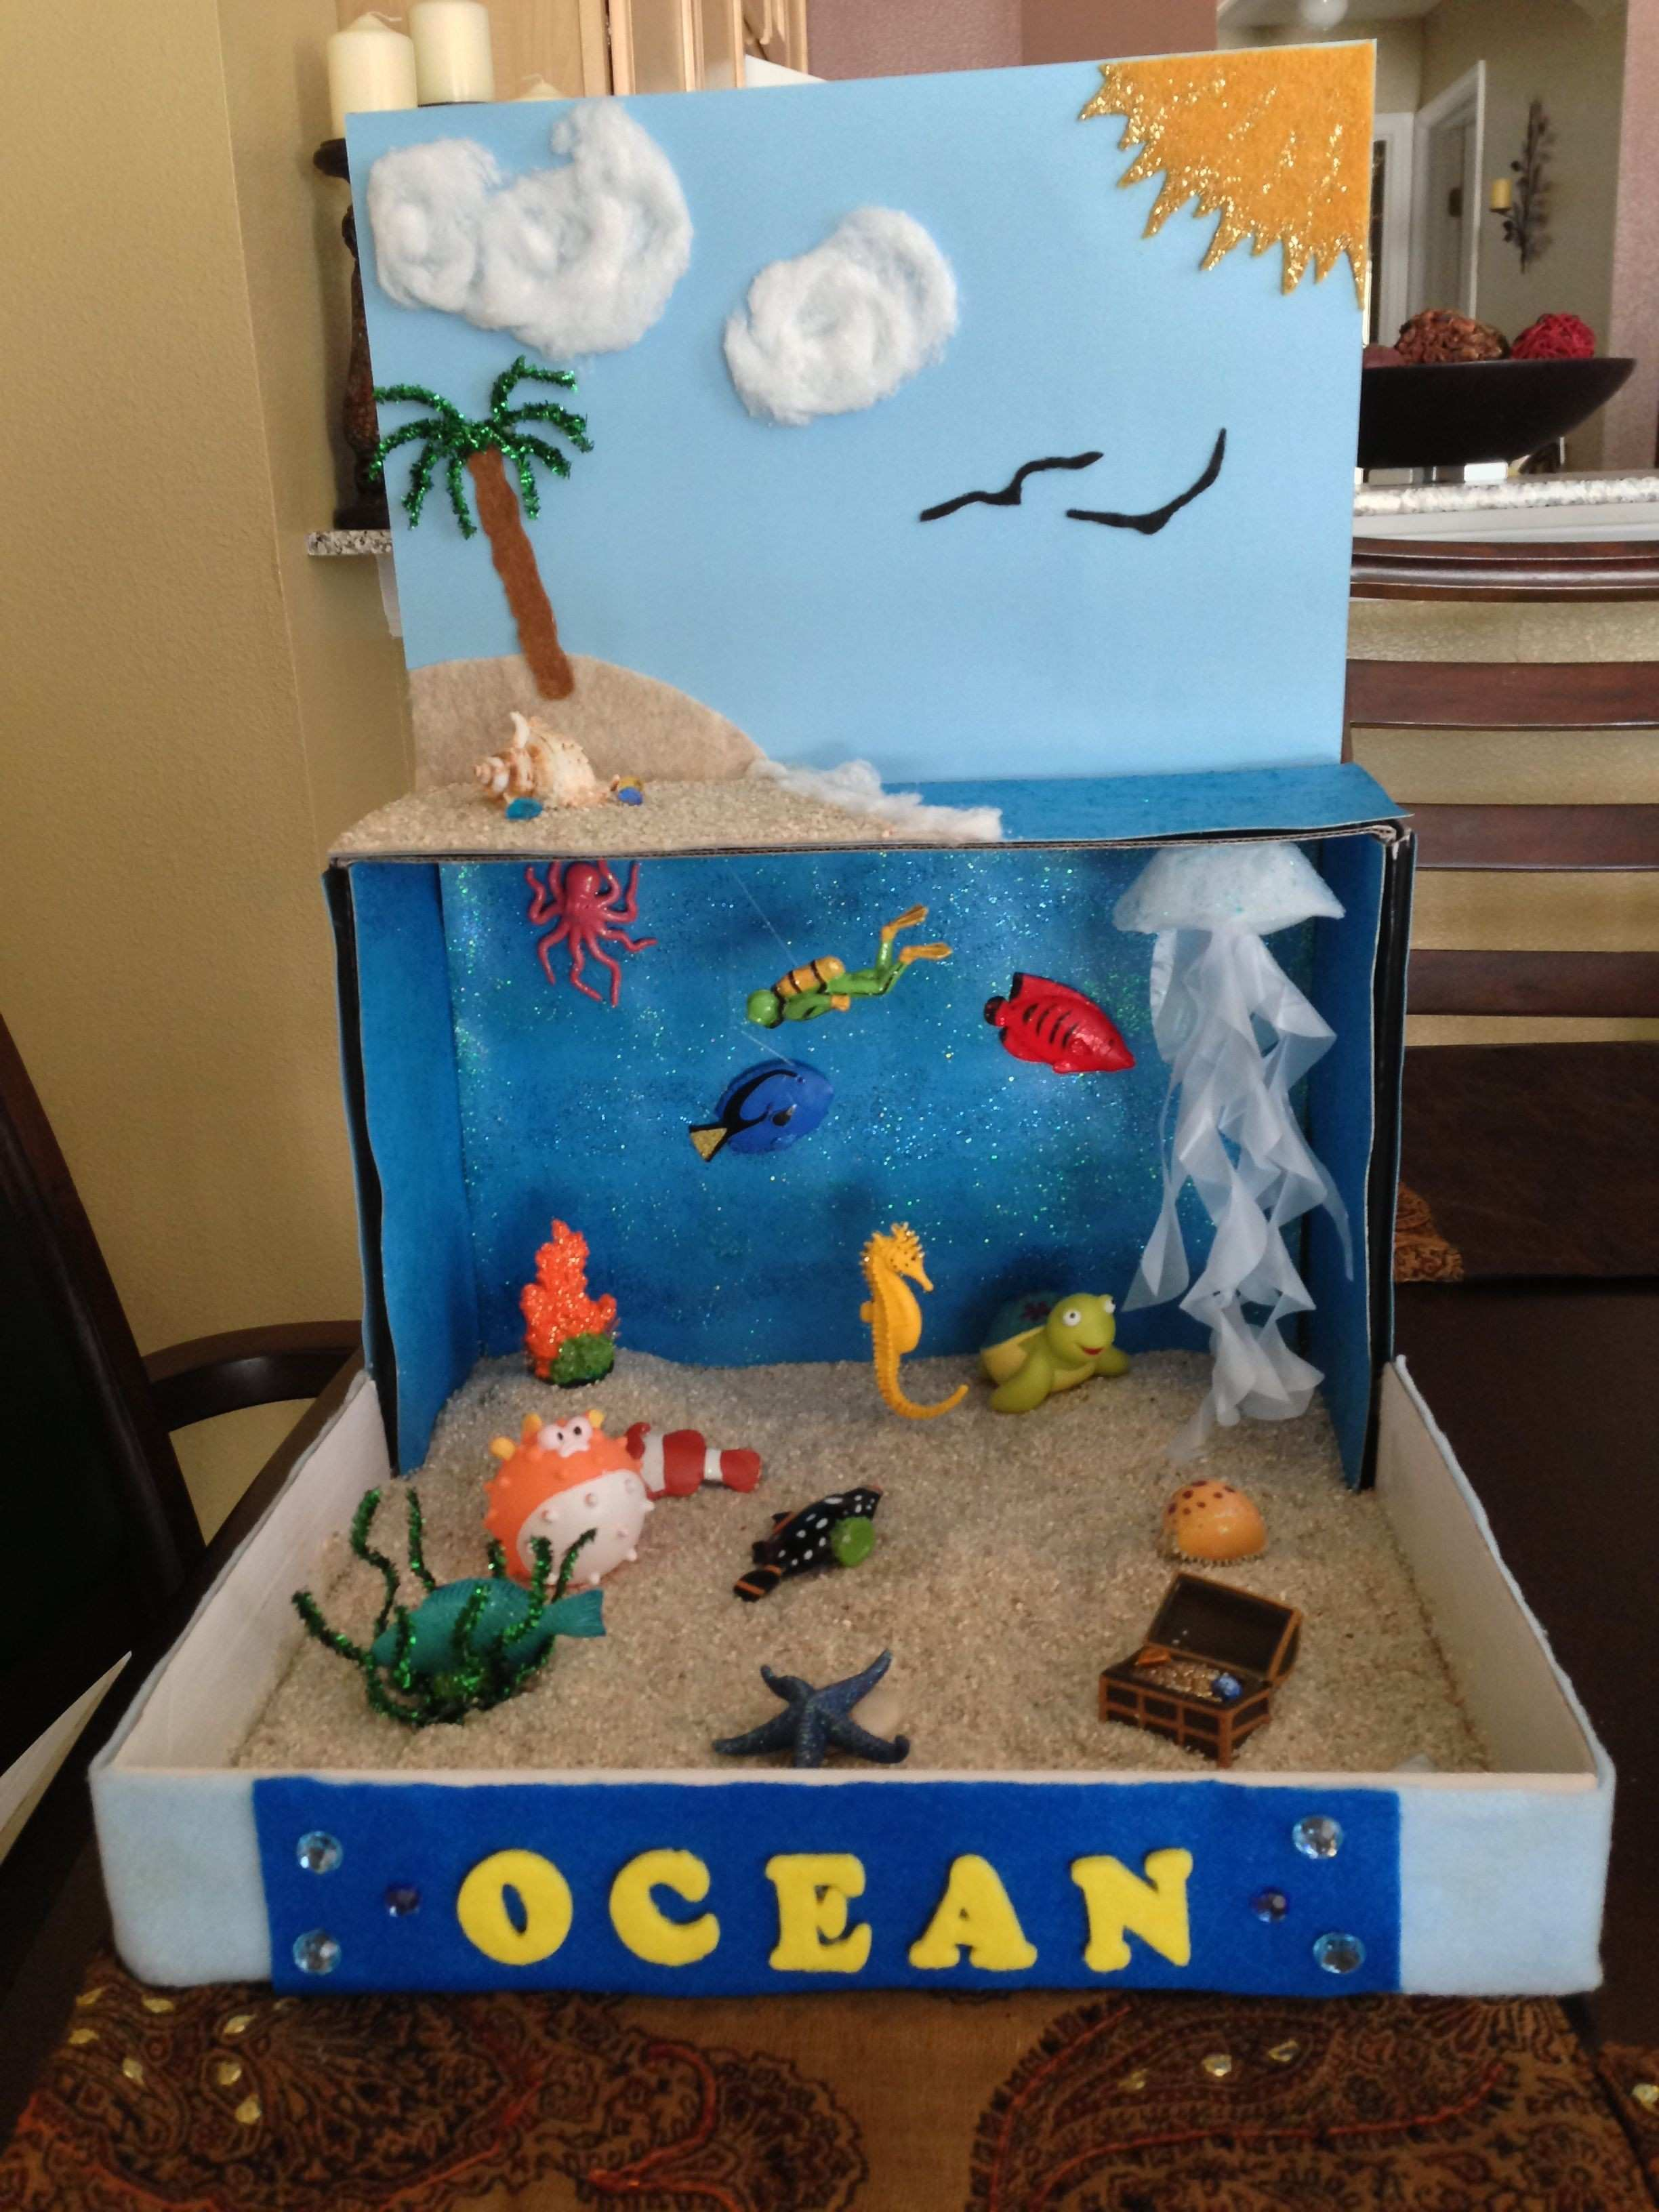 Crafts for Kids Elegant Ocean Diorama for School Project Idea for Henry 2nd Grade Project